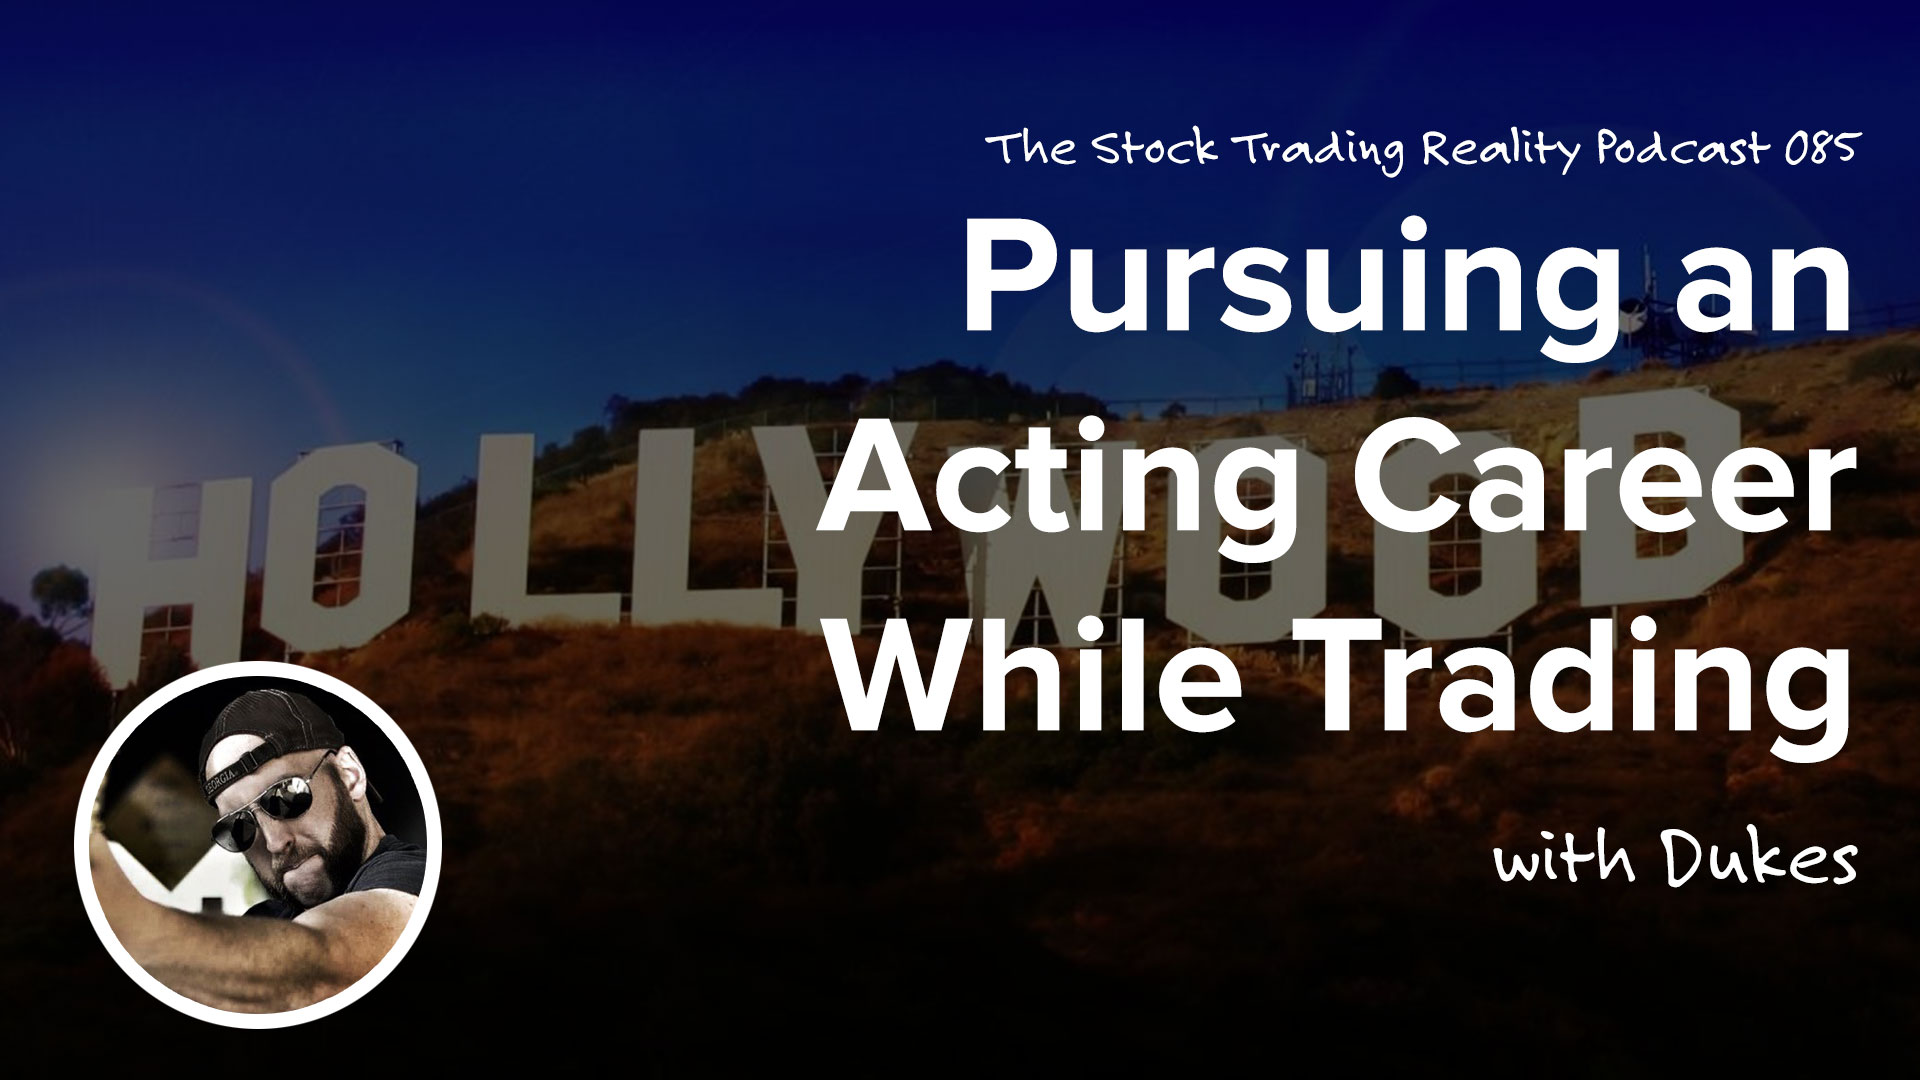 STR 085: Pursuing an Acting Career While Trading